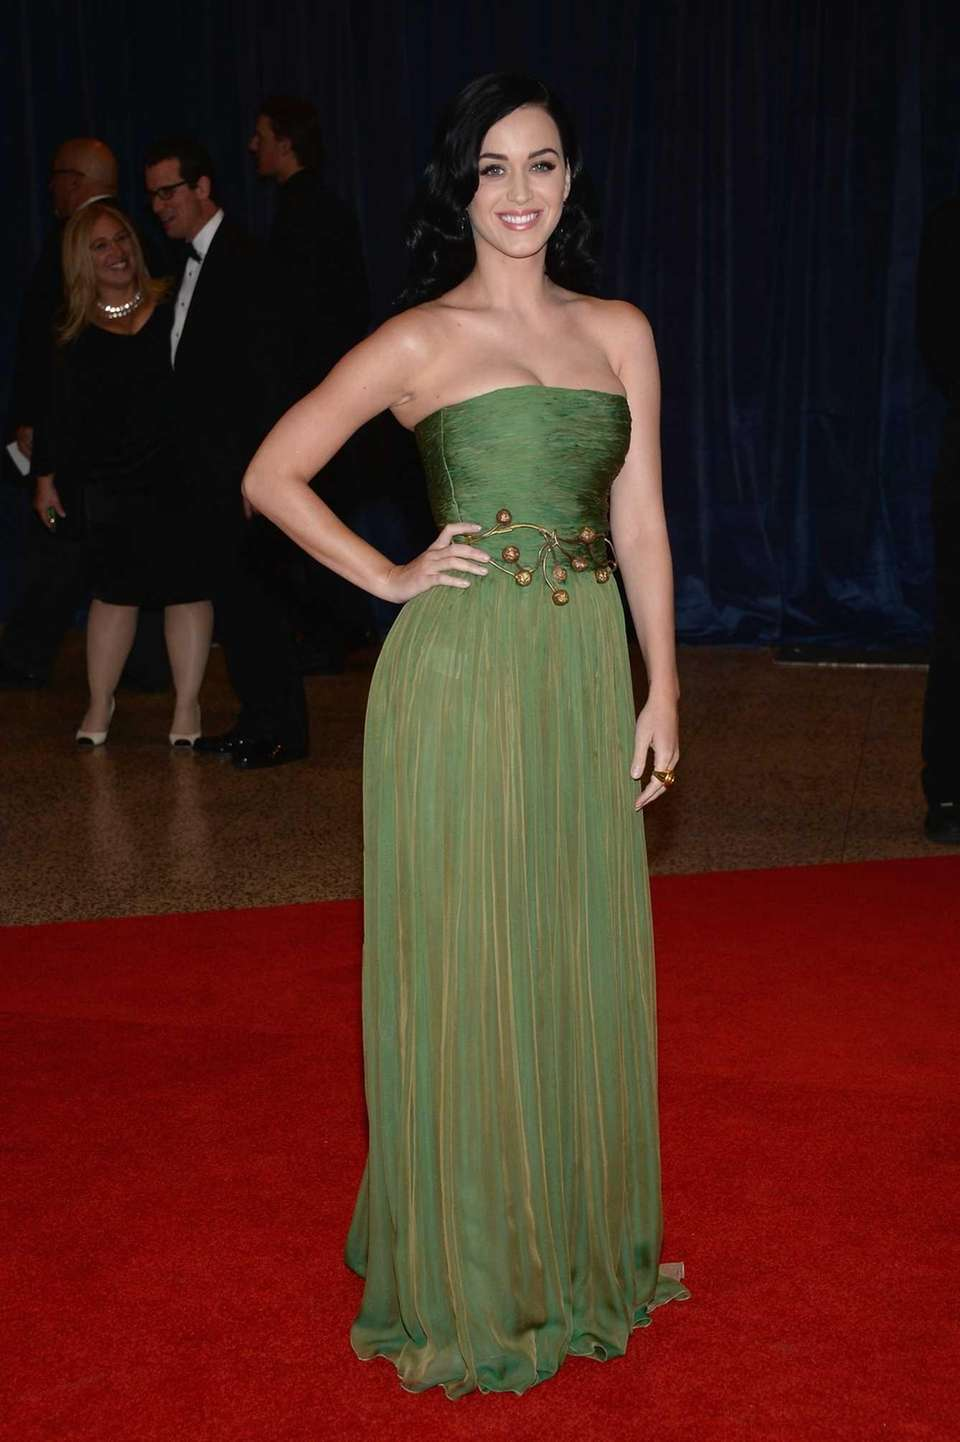 Katy Perry attends the White House Correspondents' Association